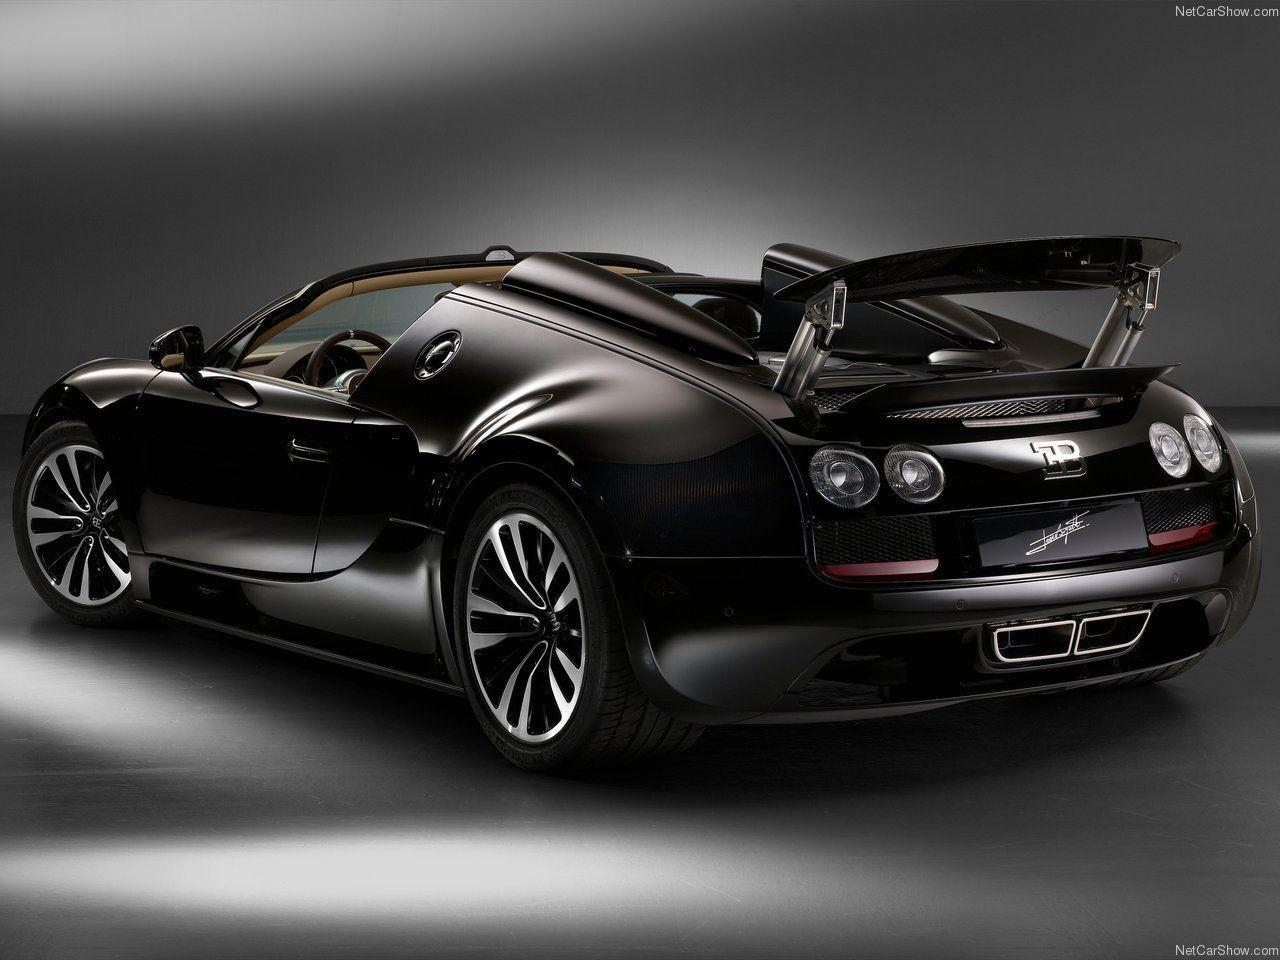 2013 Bugatti Veyron Jean Bugatti Background for Windows 8 ...